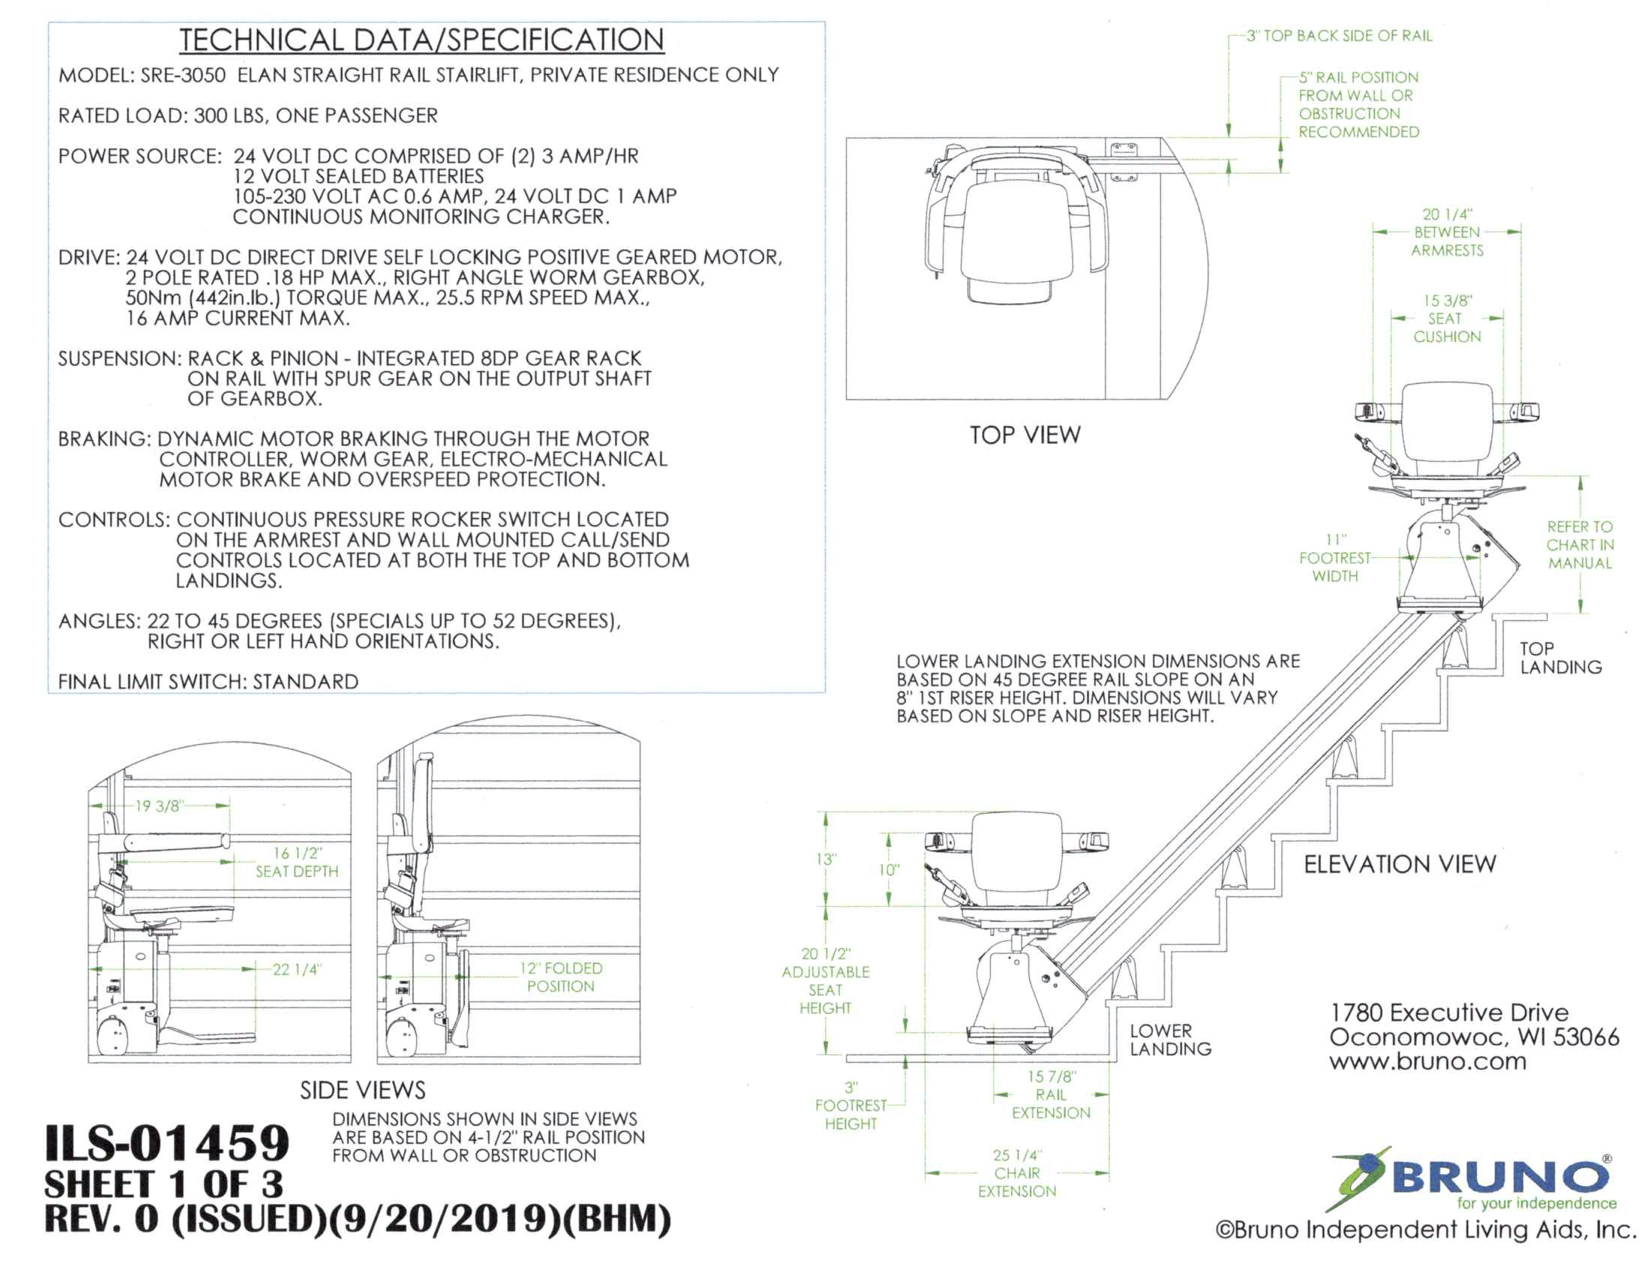 Download the Technical Specifications PDF